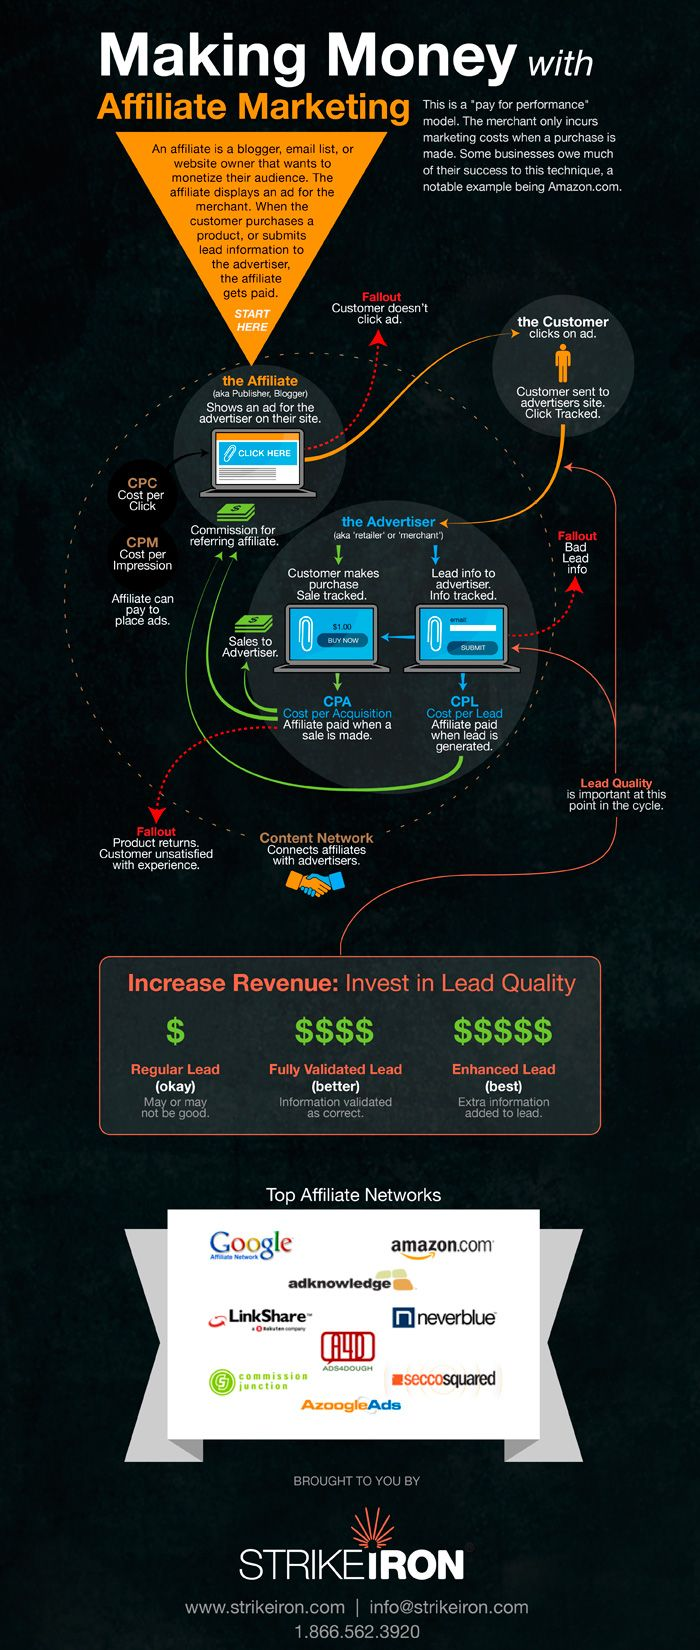 Making Money With Affiliate Marketing #infographic #socialmedia http://www.tipshowtomakemoney.com